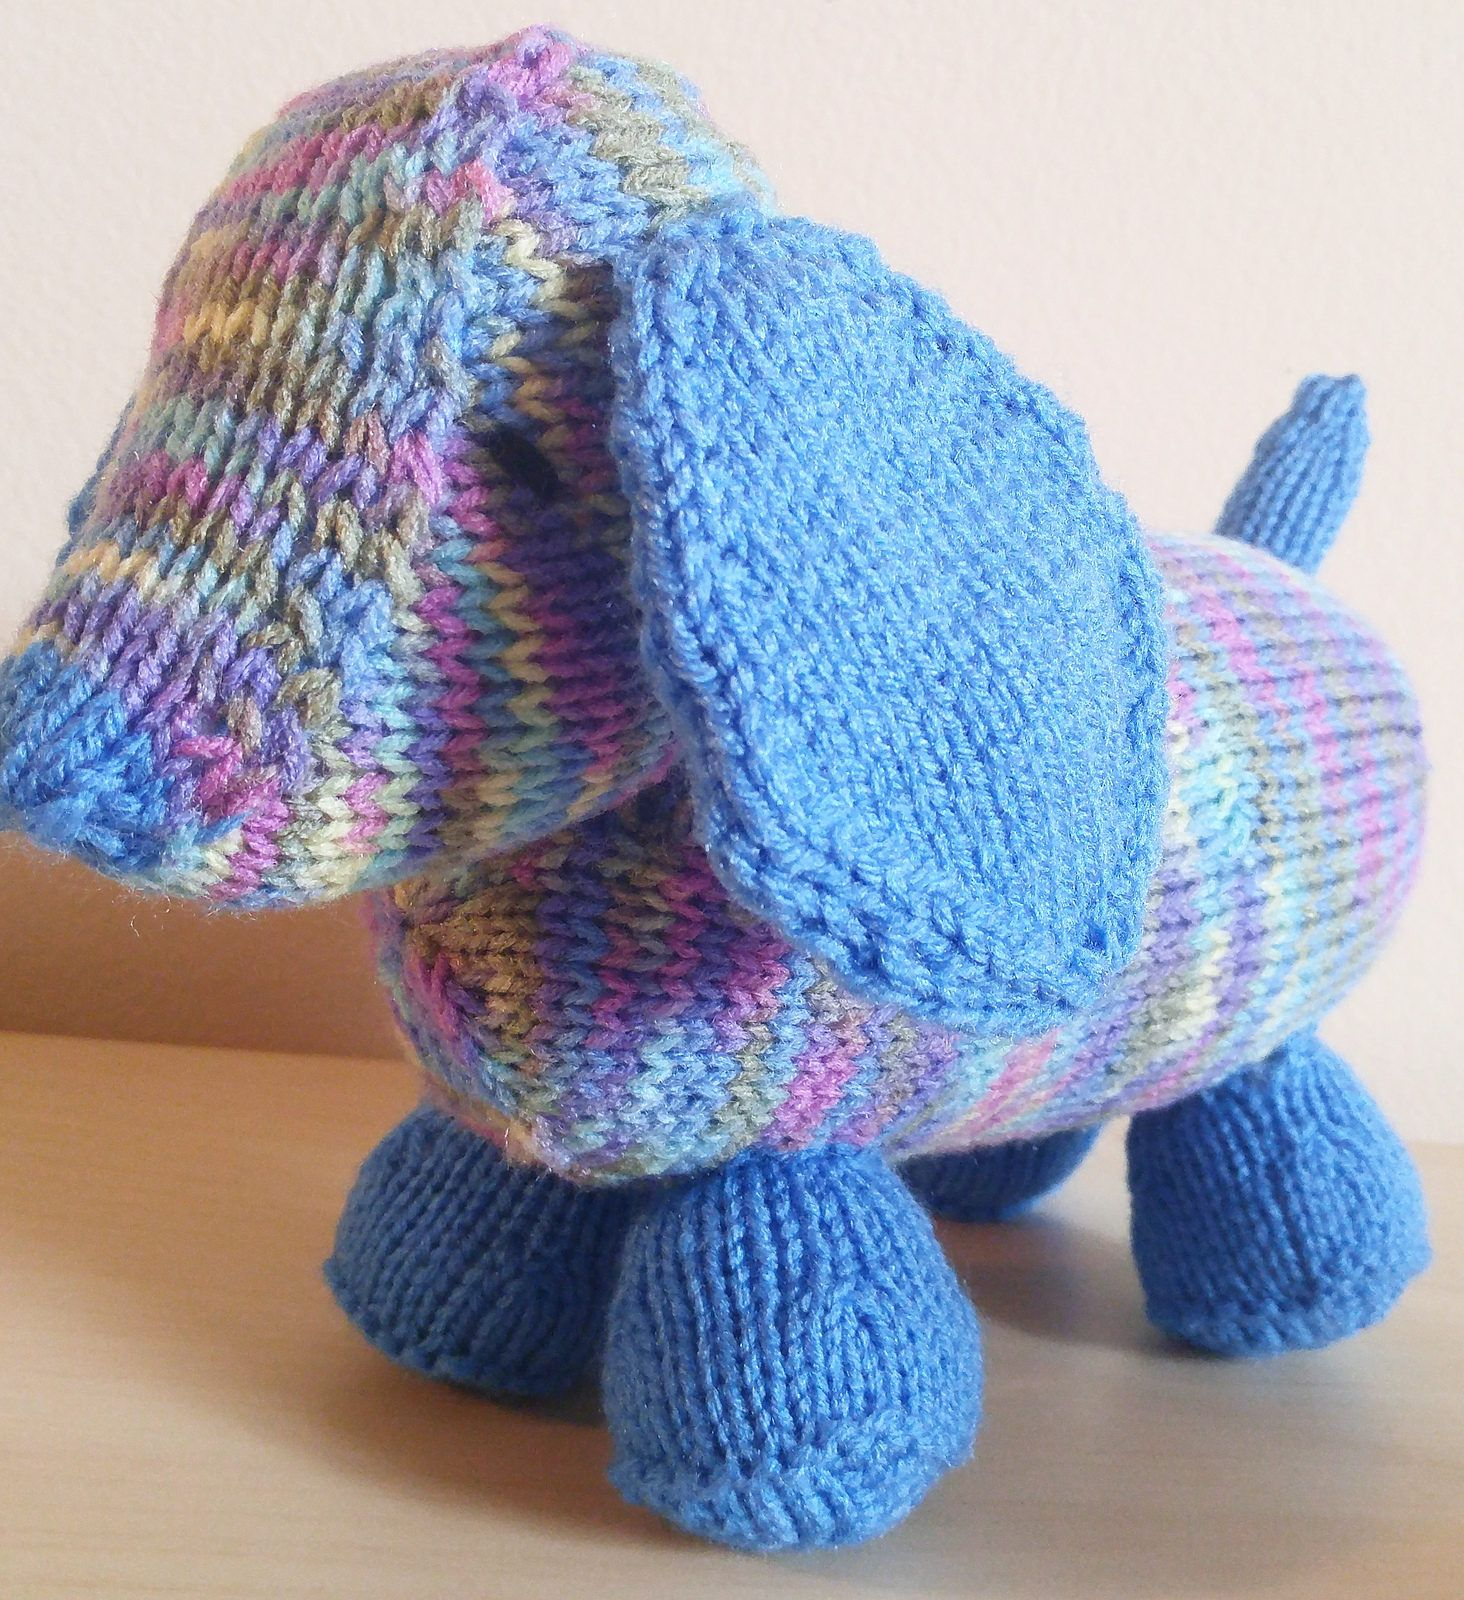 Free Knitting Pattern for Luis The Long Puppy - Toy dog designed by ...